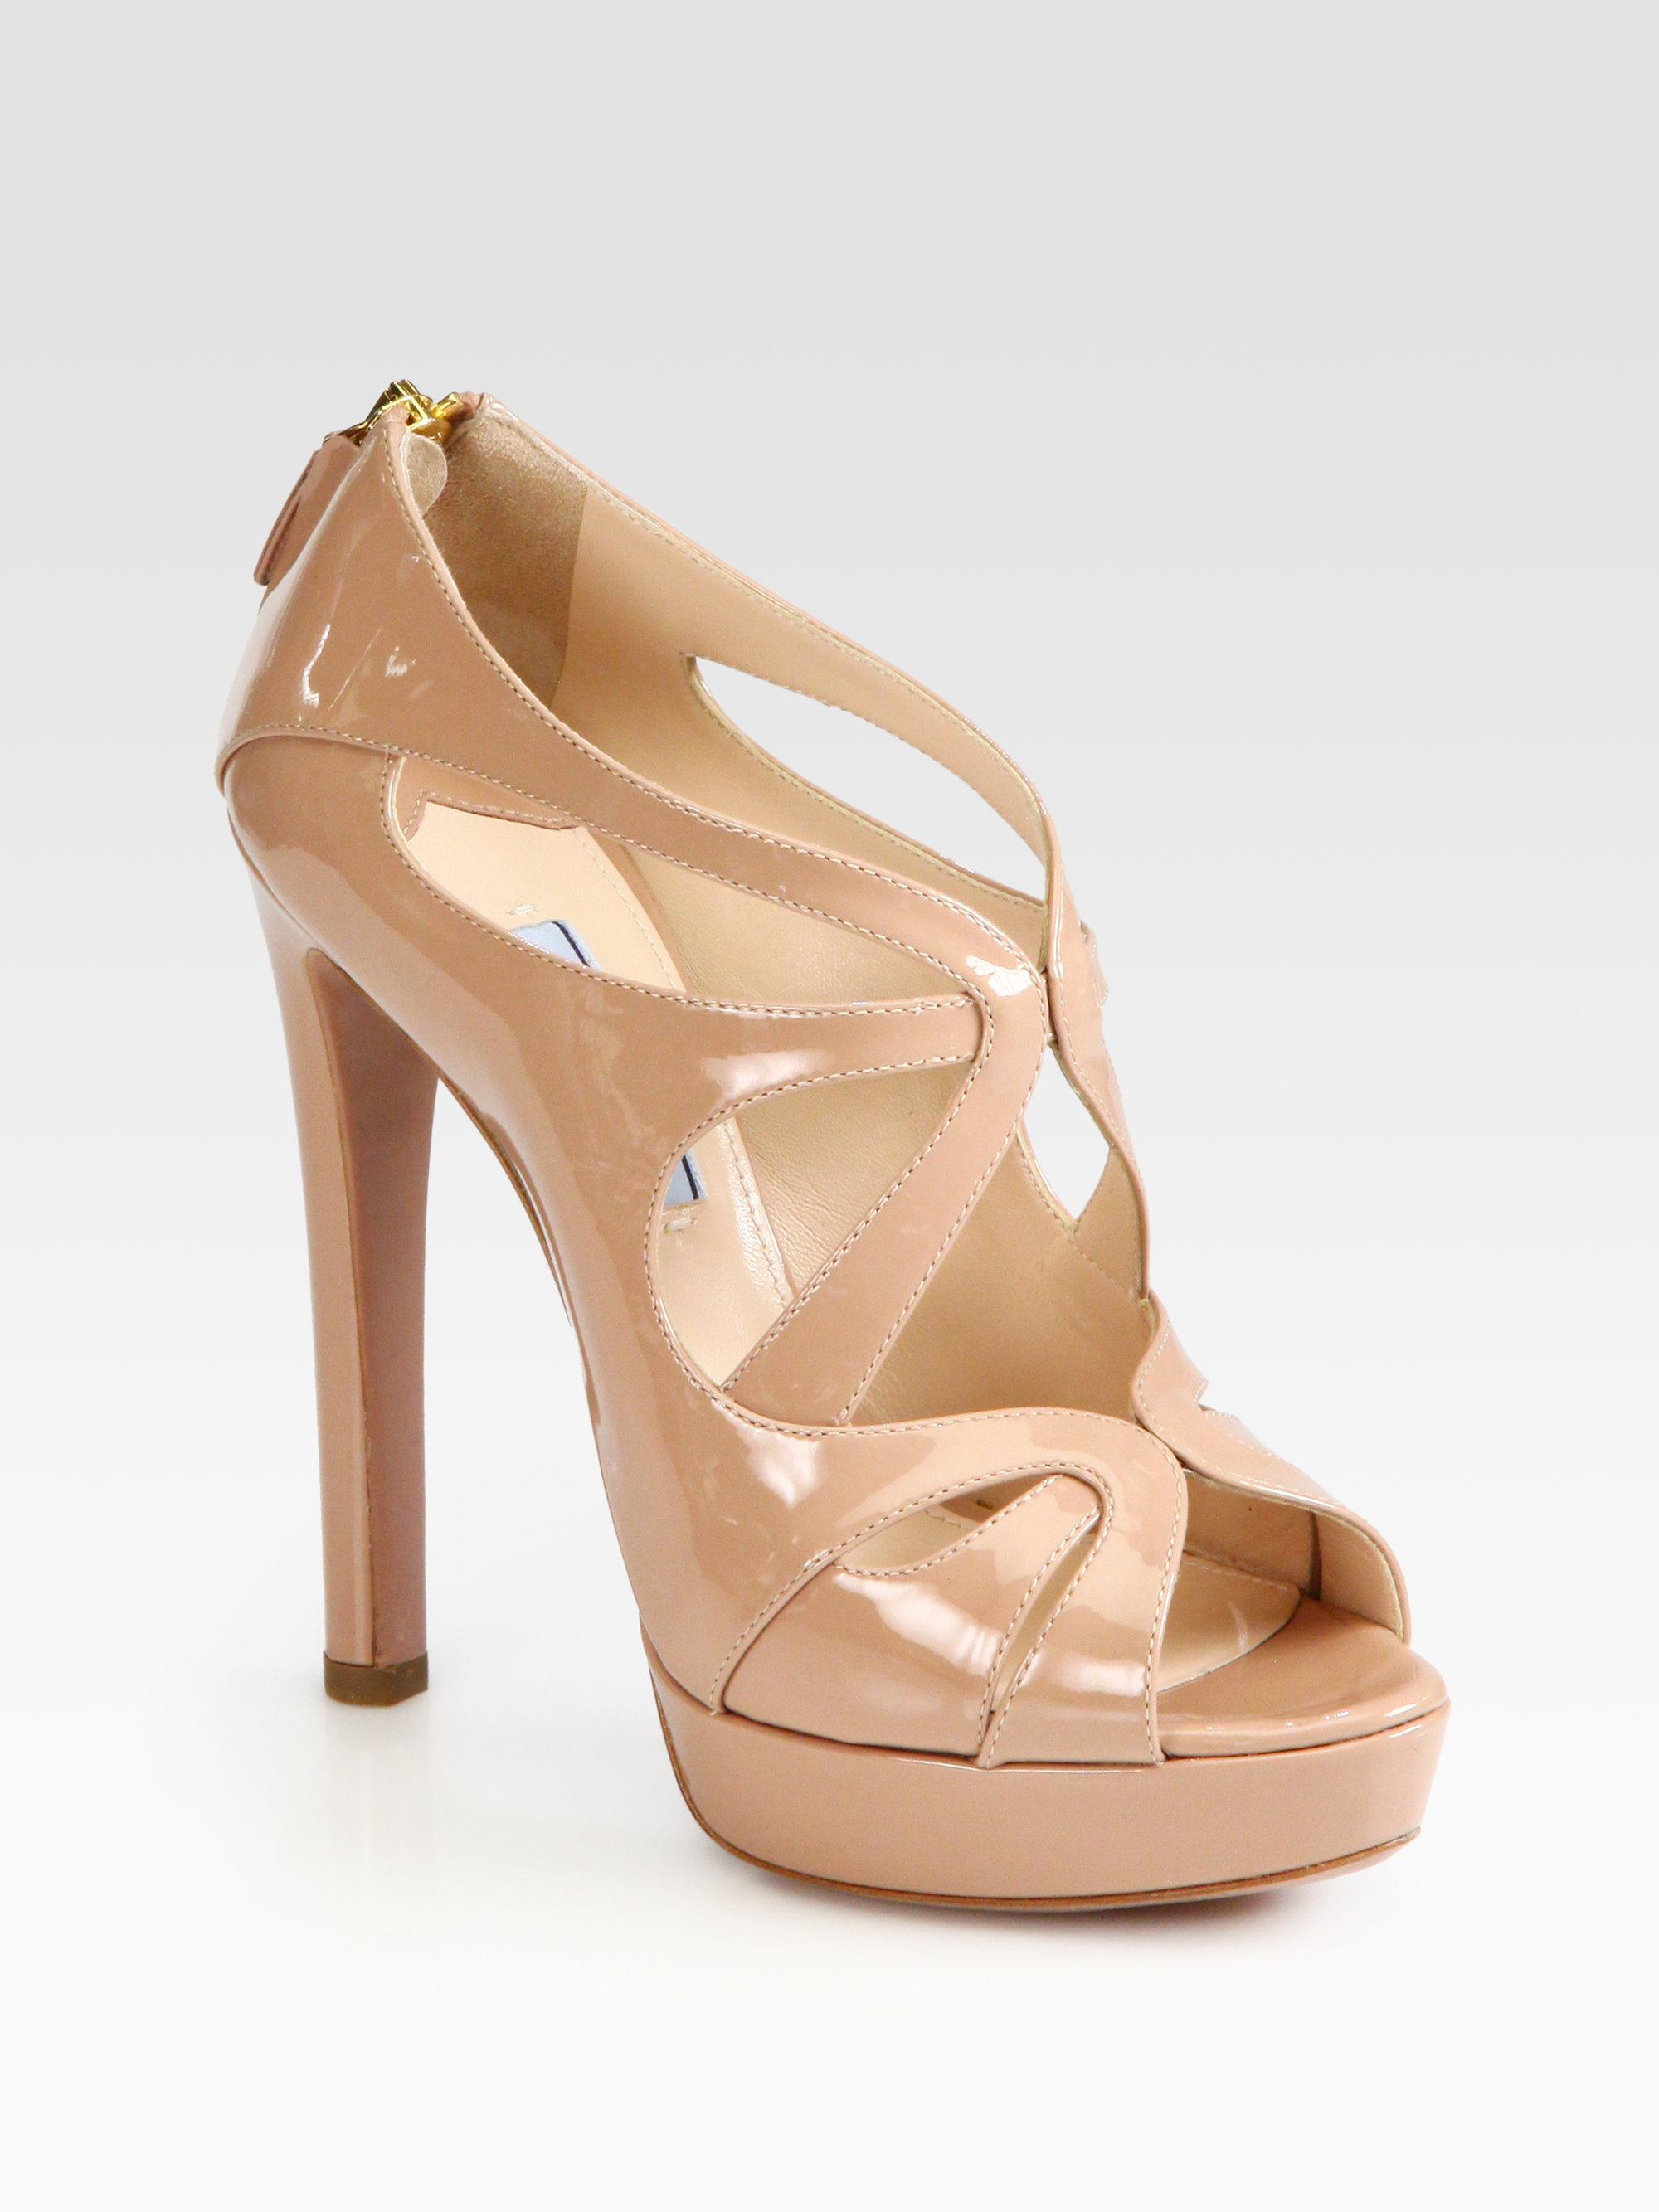 21caa72ddf180 Lyst - Prada Patent Leather Strappy Platform Sandals in Natural